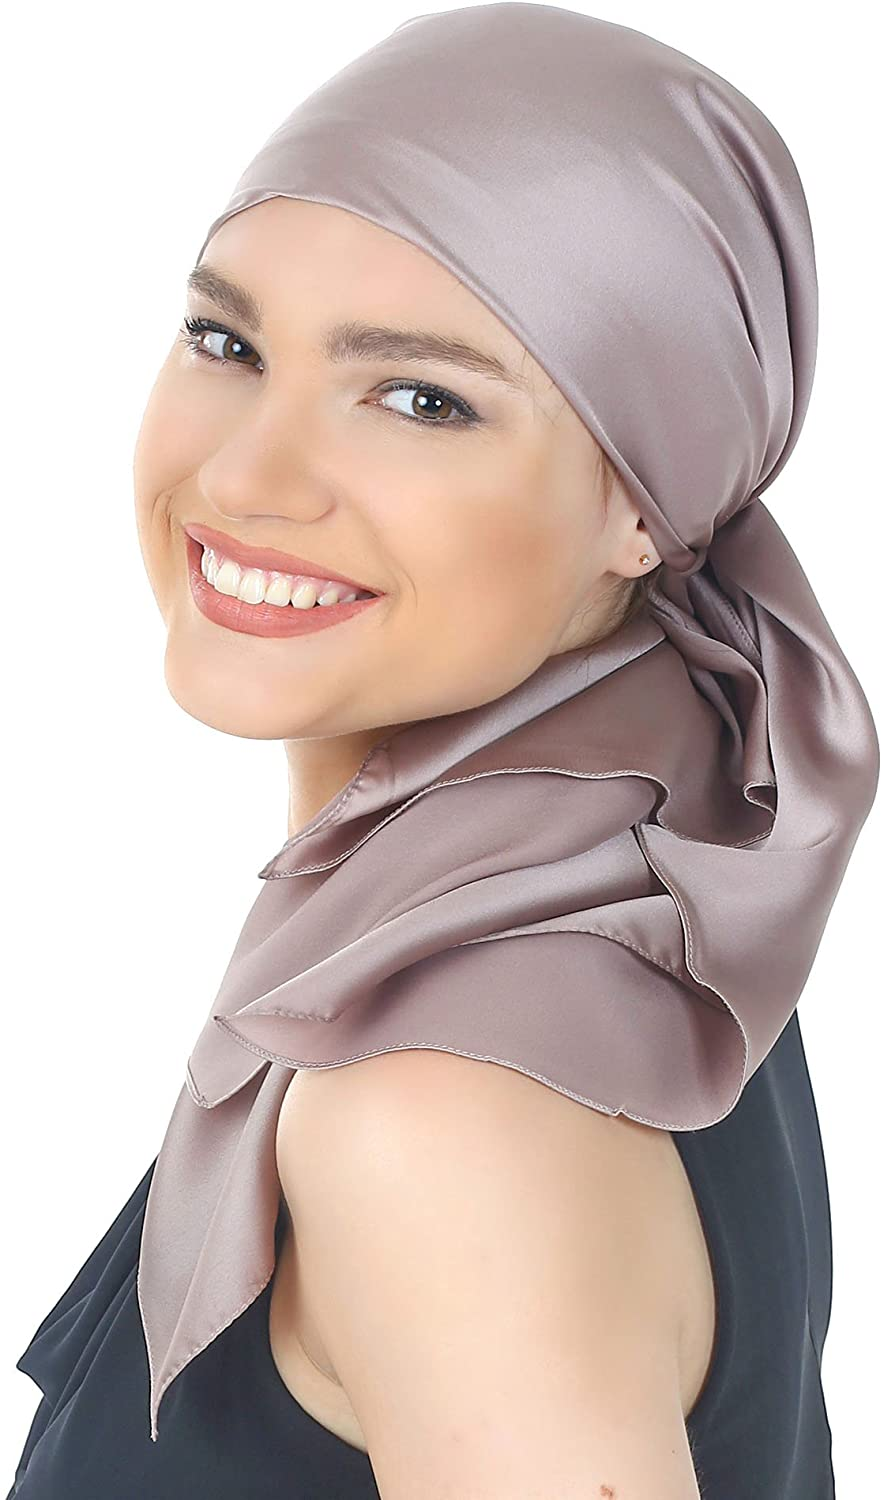 Womens Crepe Satin Luxurious Square Head Scarves - Solid Colours (90cmx90cm) for Cancer Chemo Hair Loss